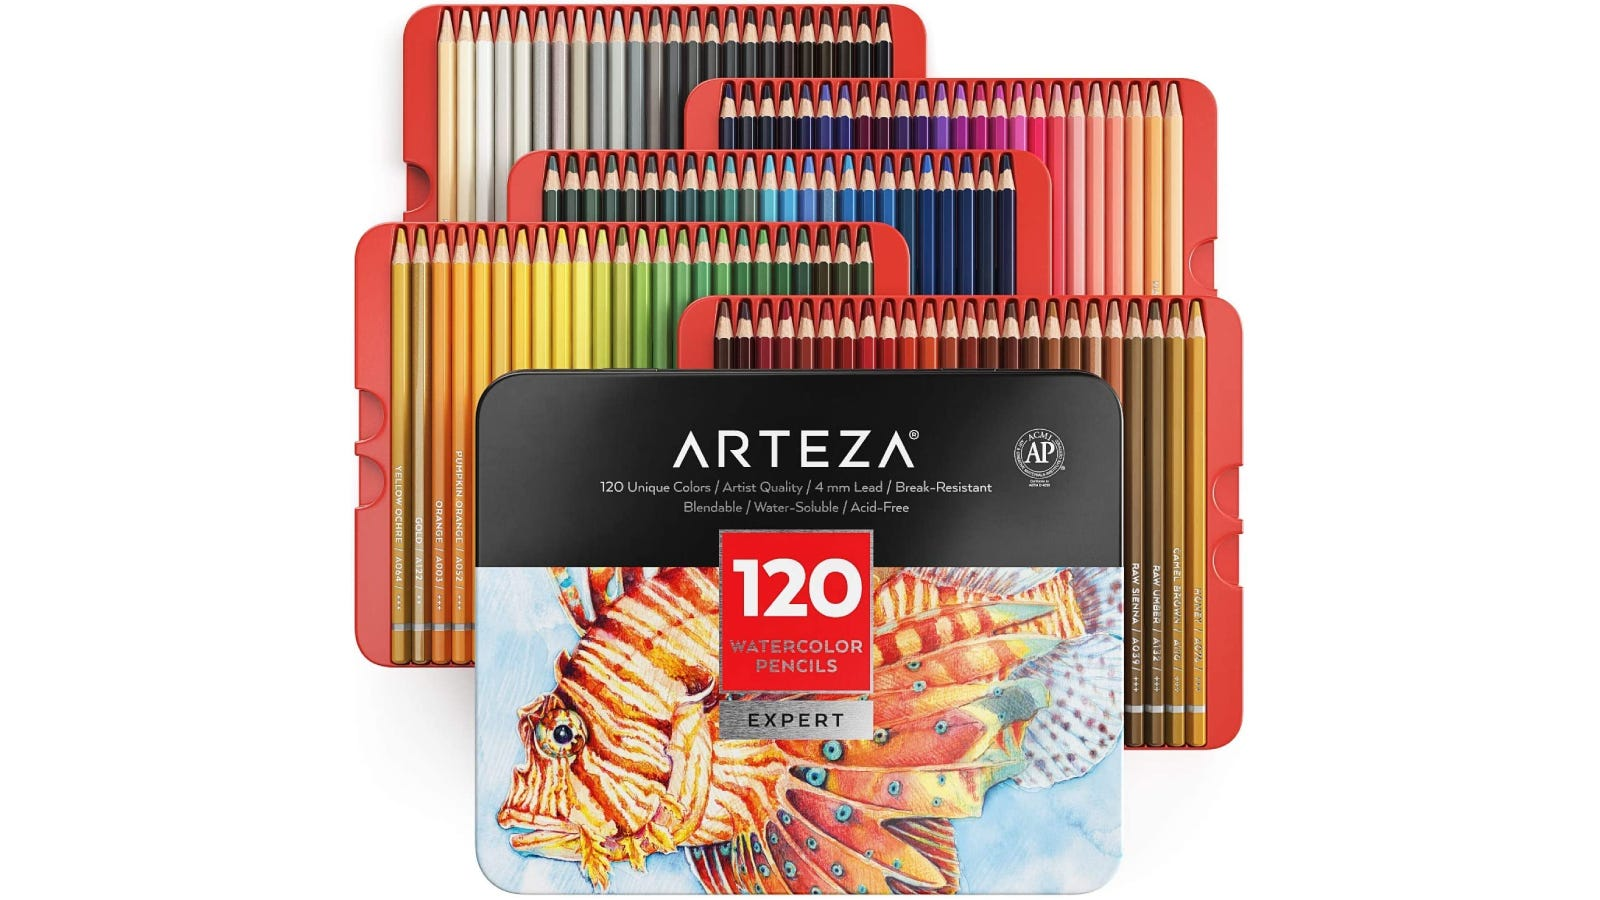 ARTEZA box lid in front with five trays of watercolor pencils stacked behind